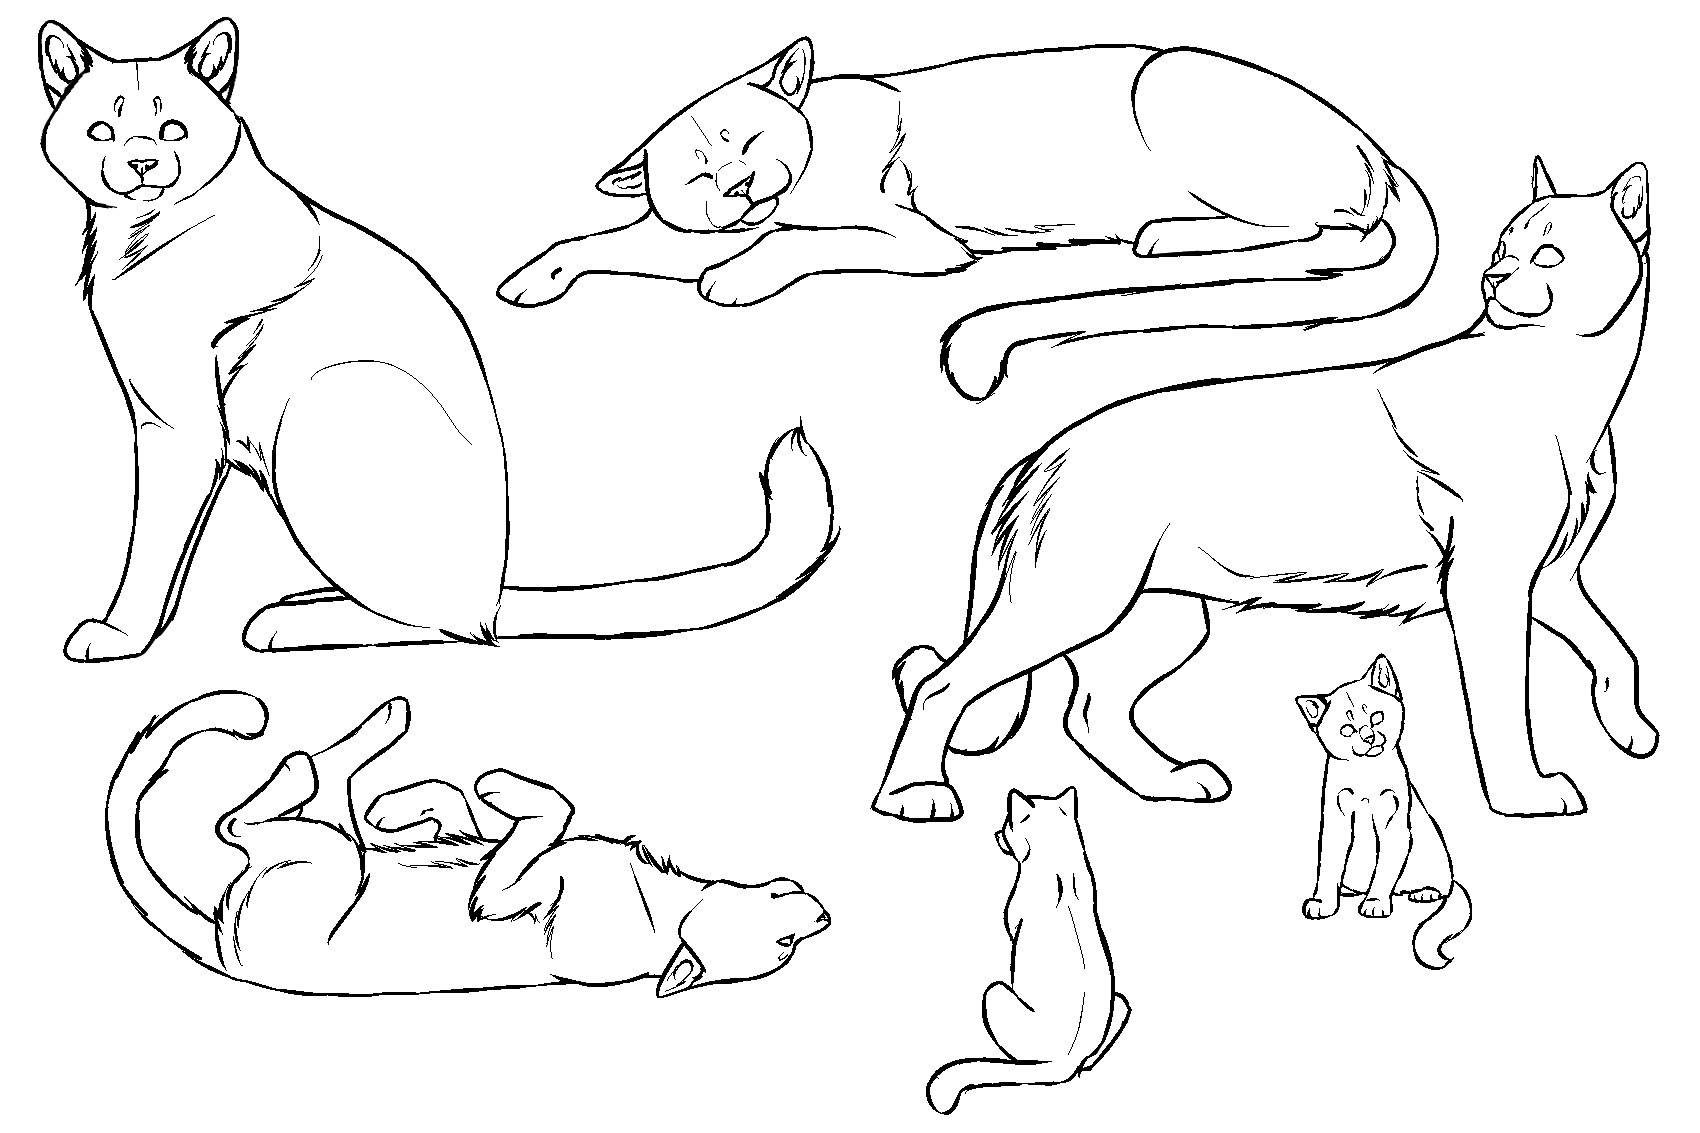 Free cat lineart by dikkebobby-d5043ef.png